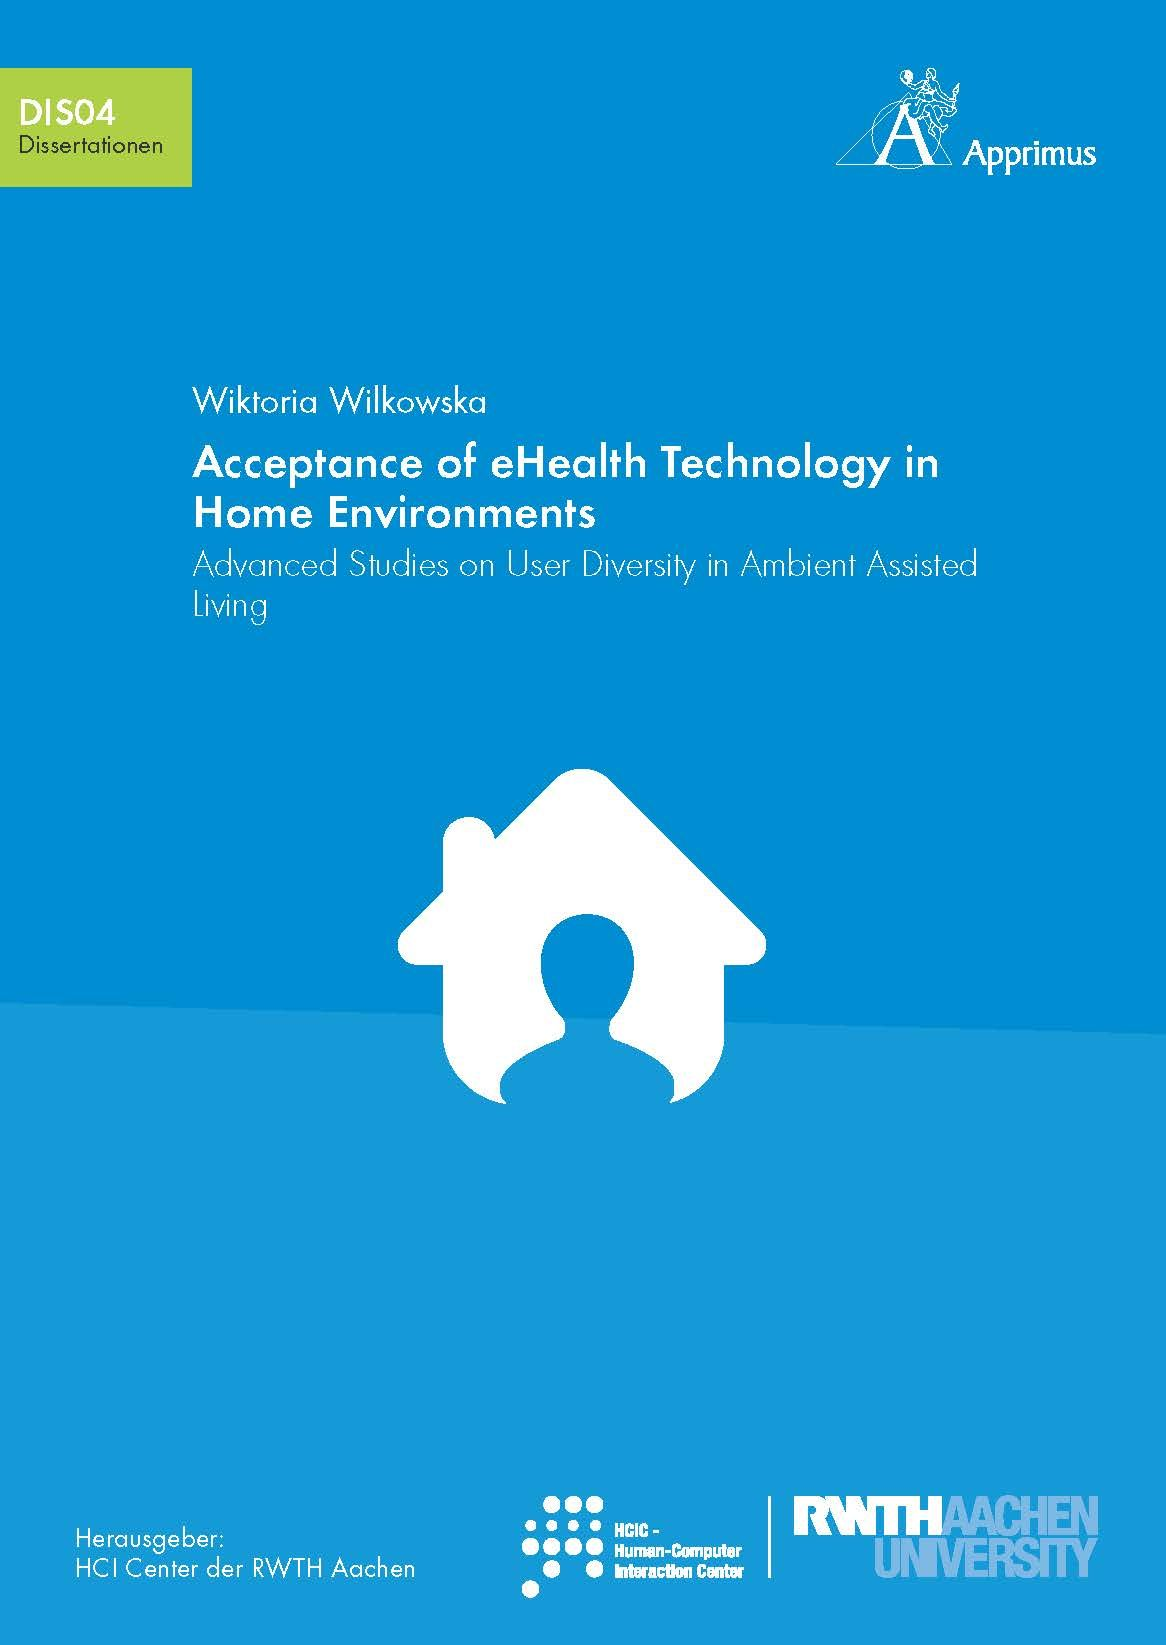 Acceptance of eHealth Technology in Home Environments: Advanced Studies on User Diversity in Ambient Assisted Living